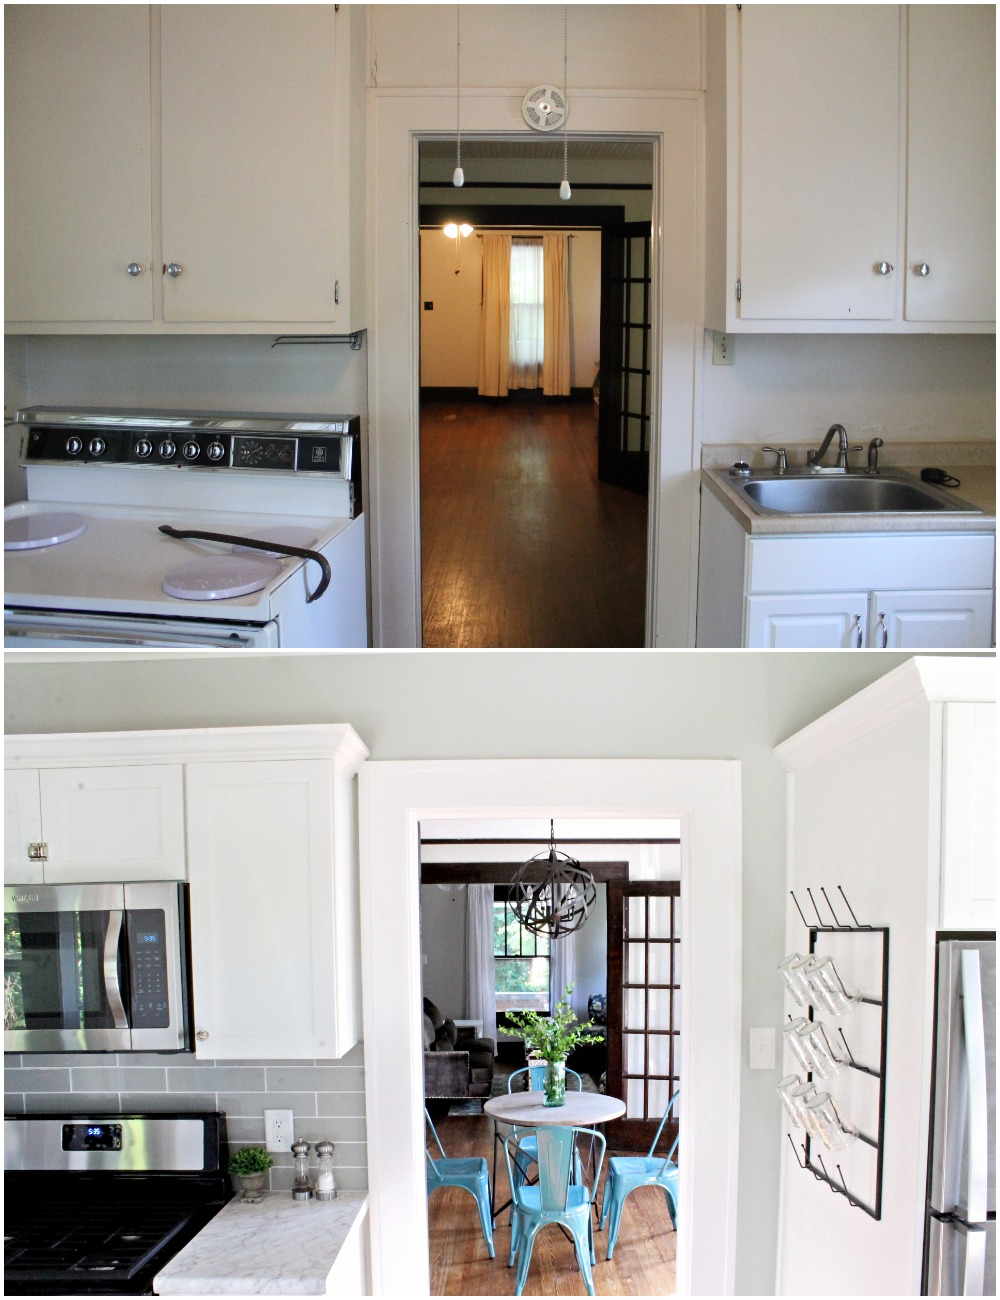 House Flipping Before and Afters - Budget Kitchen Renovation, Cheap Cabinets, Cheap Countertops - Sherwin Williams Silver Strand 21